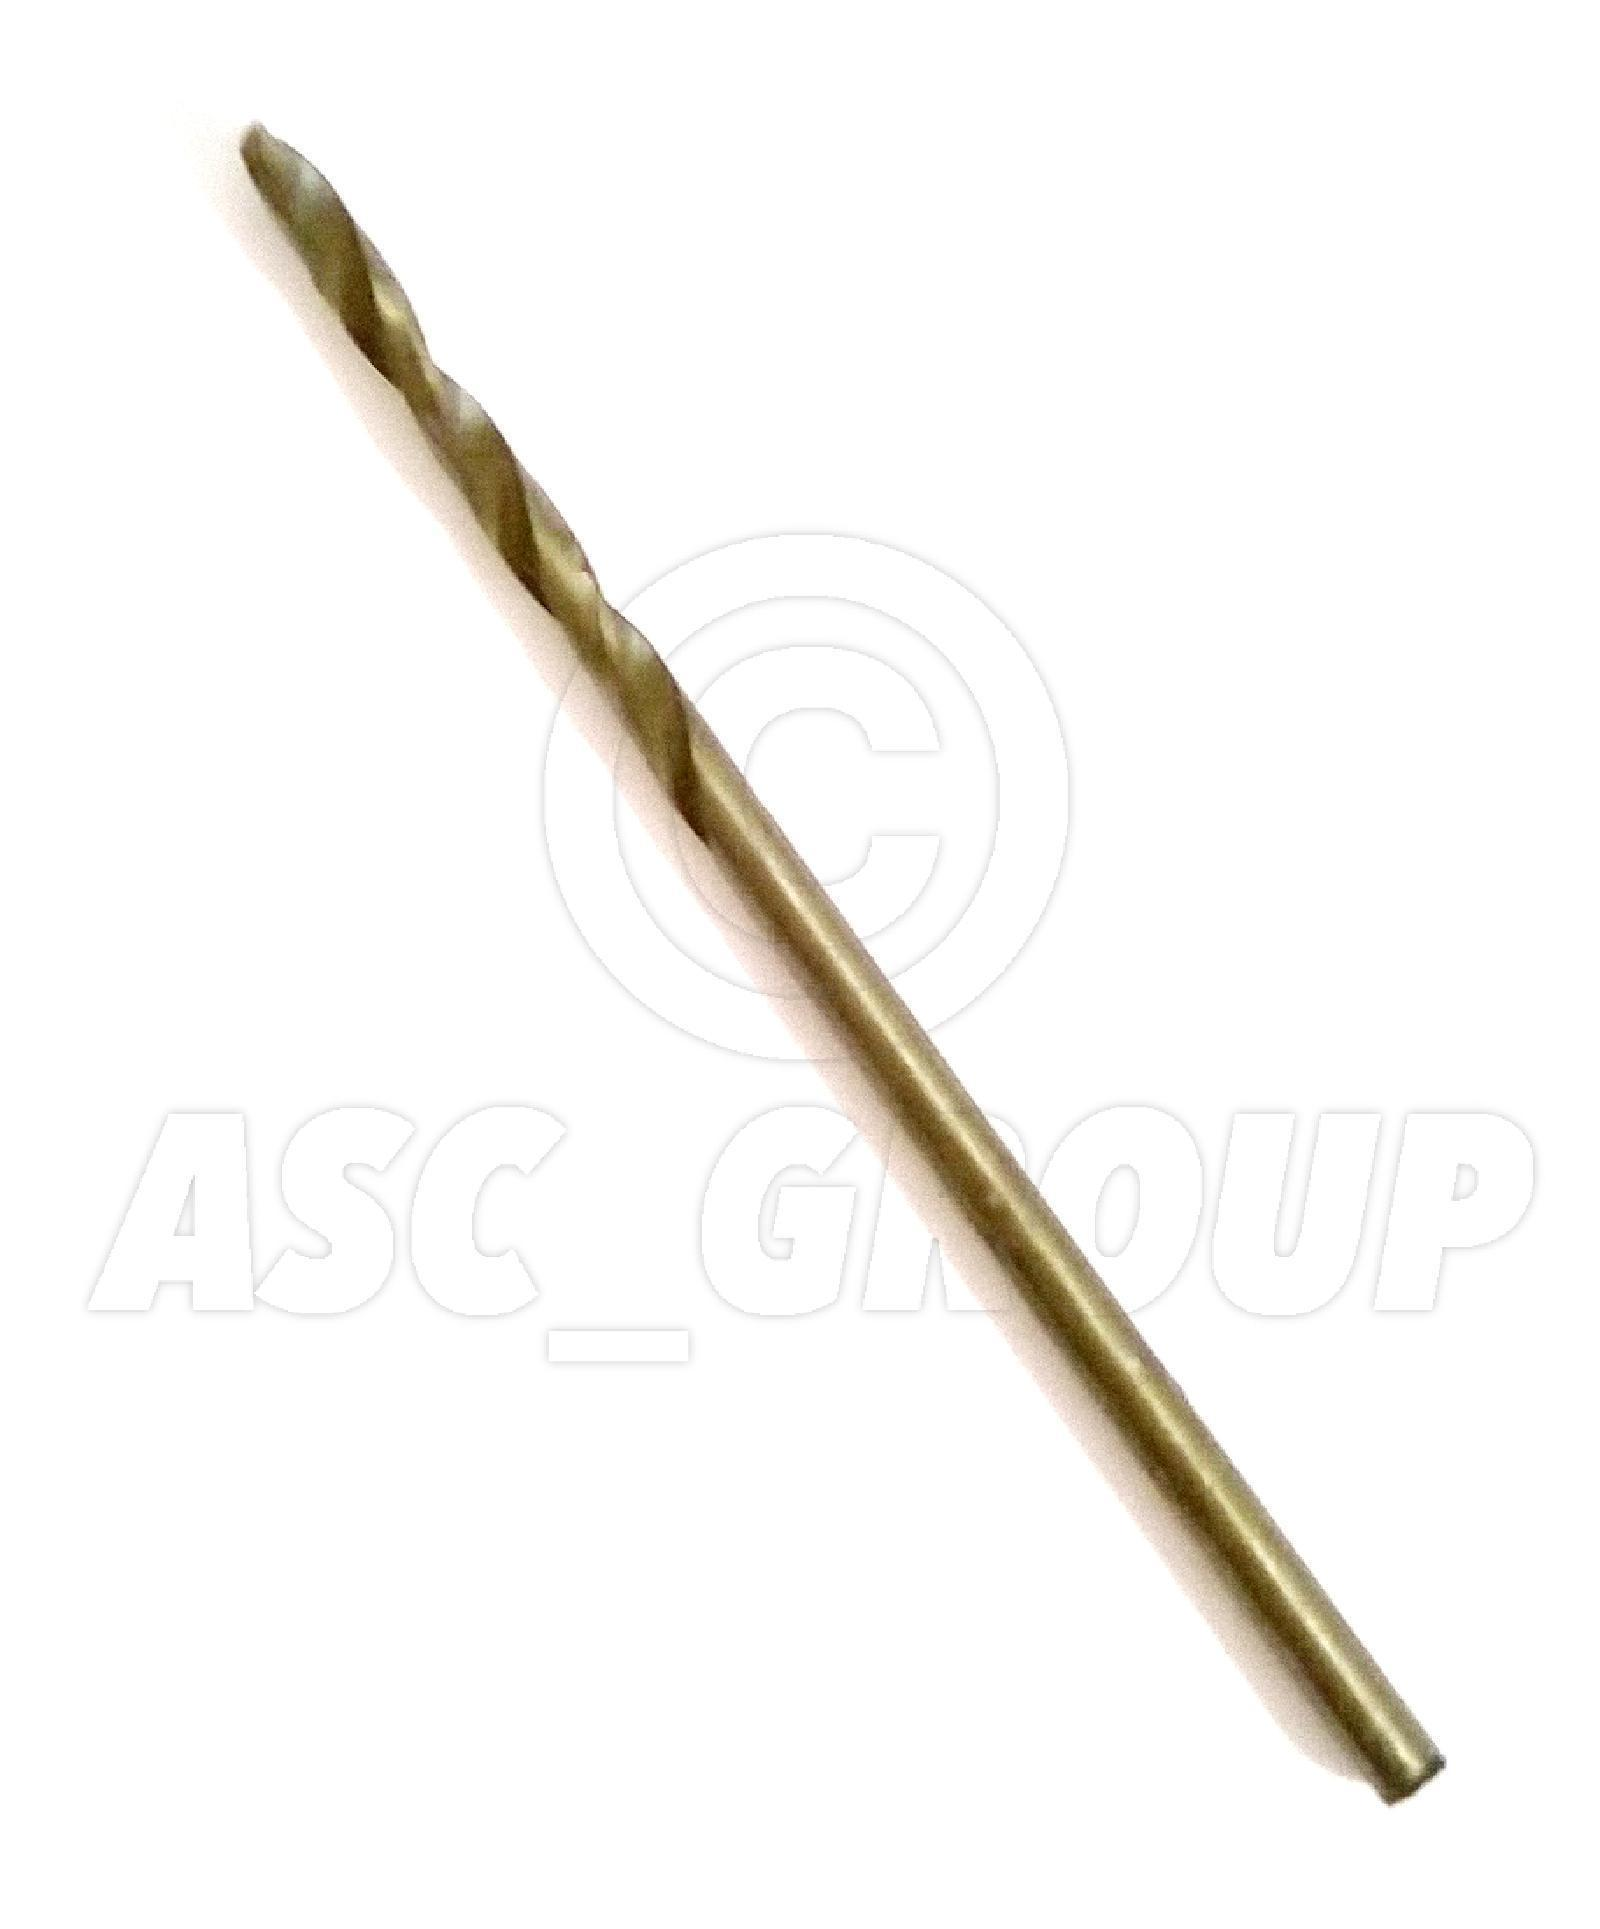 Professional-Drill-Bits-HSS-Co-Cobalt-Various-Sizes-Metal-Plastic-Wood